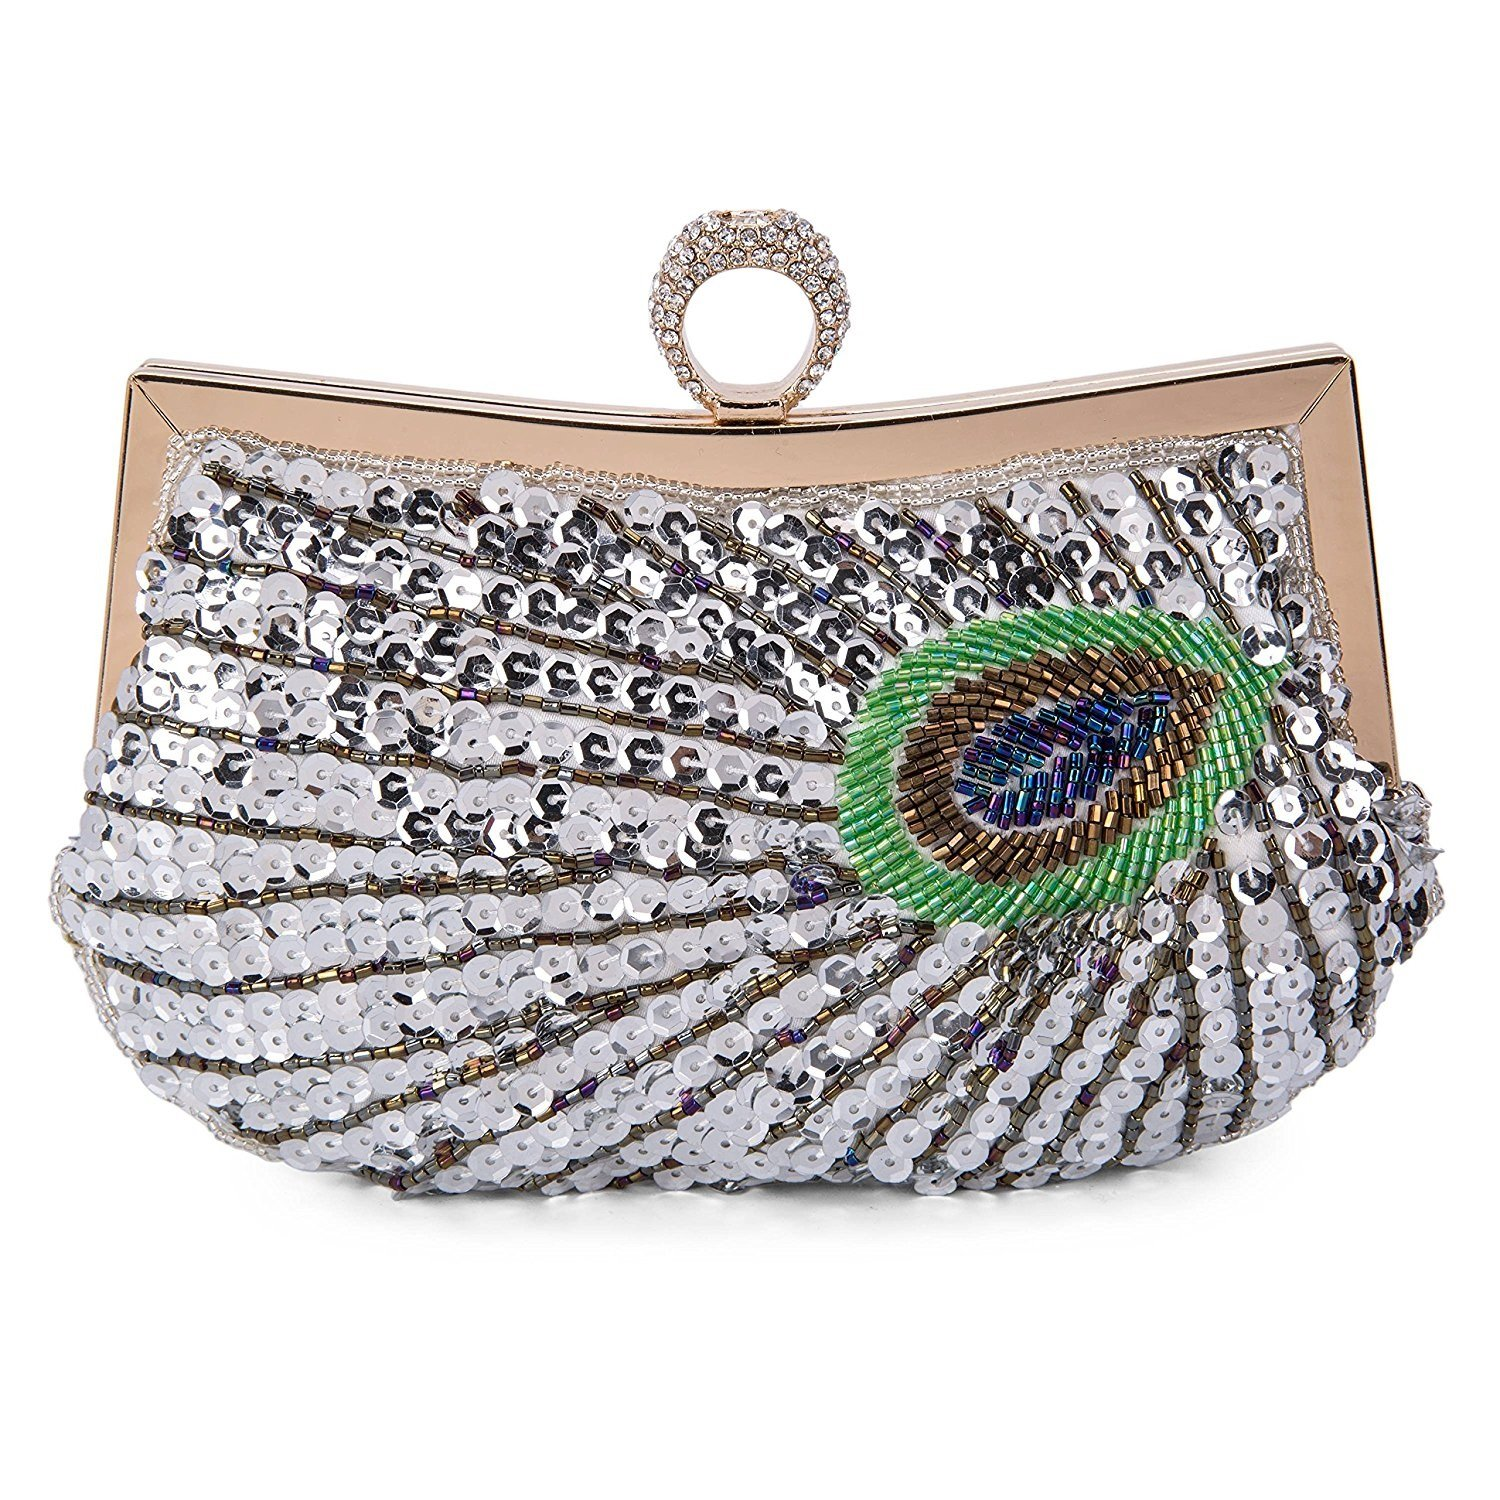 Baglamor Women Full Shining Sequins Beaded Rhinestone Peacock Embroidery Clutch Purse Handbag Evening Bag (Silver)